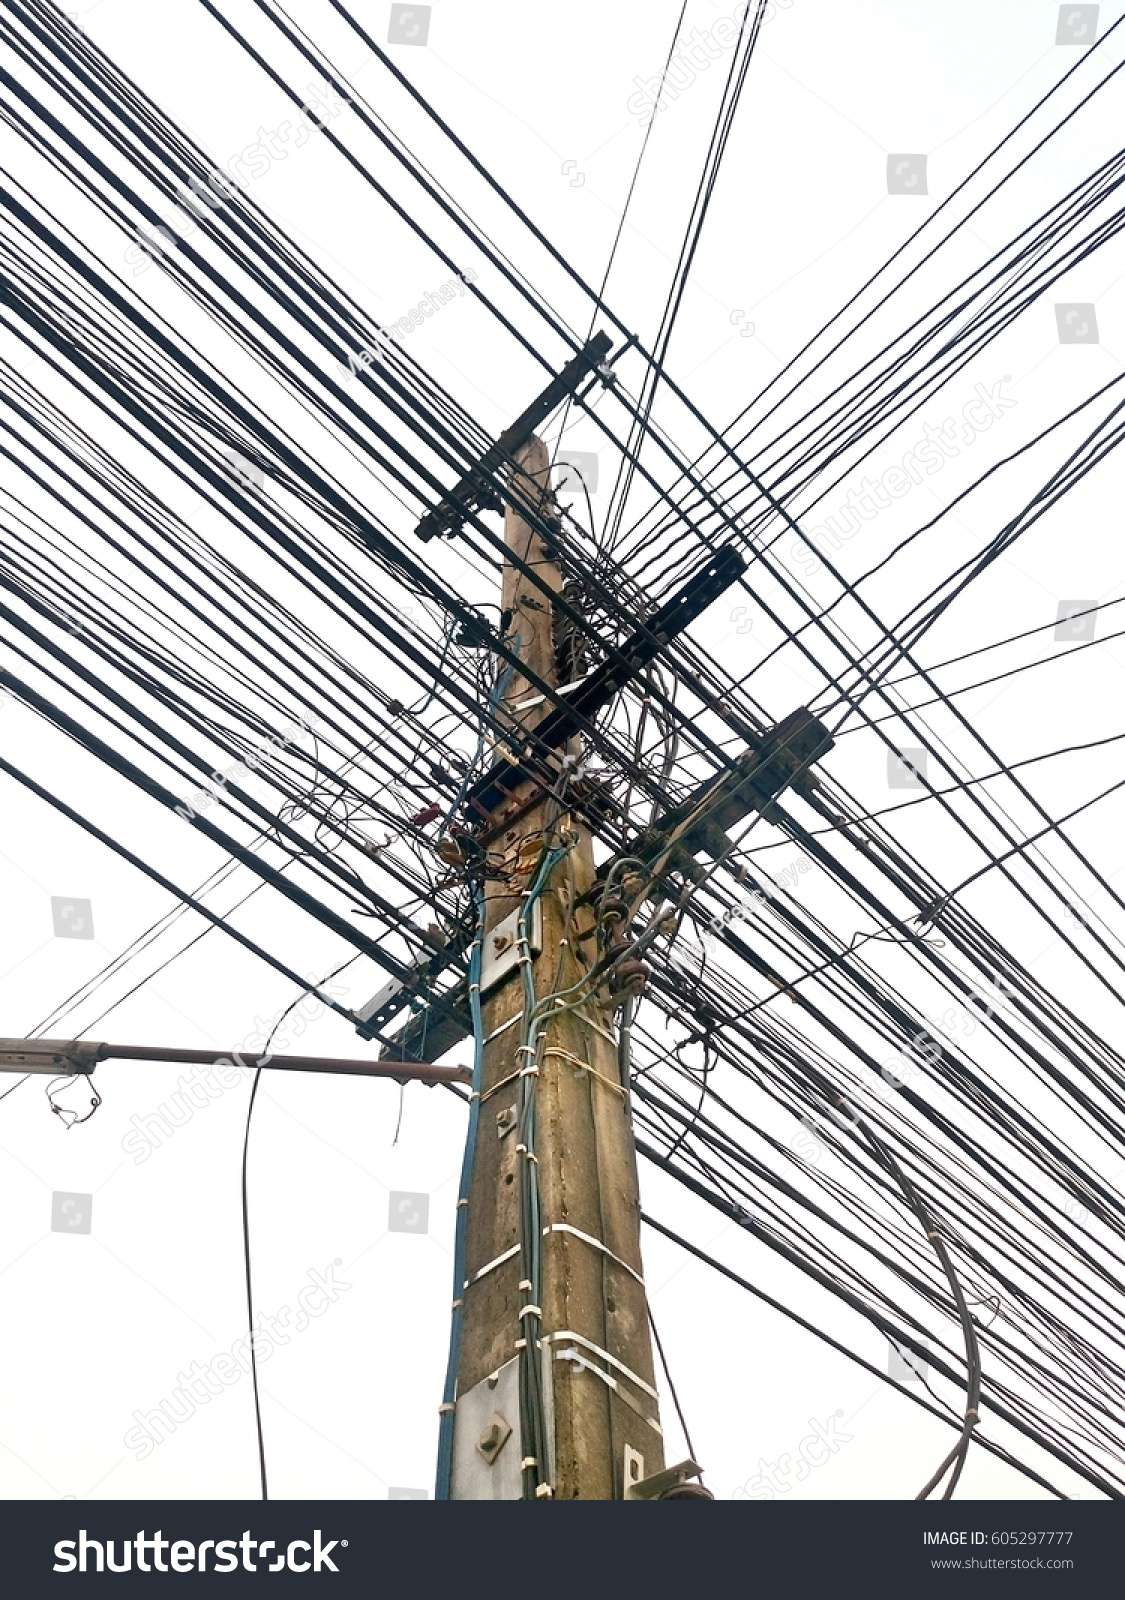 Thailand Very Messy Wires Dangerous Electrical Stock Photo Edit Now Wiring With Transformer And Power Lines On Electric Pole